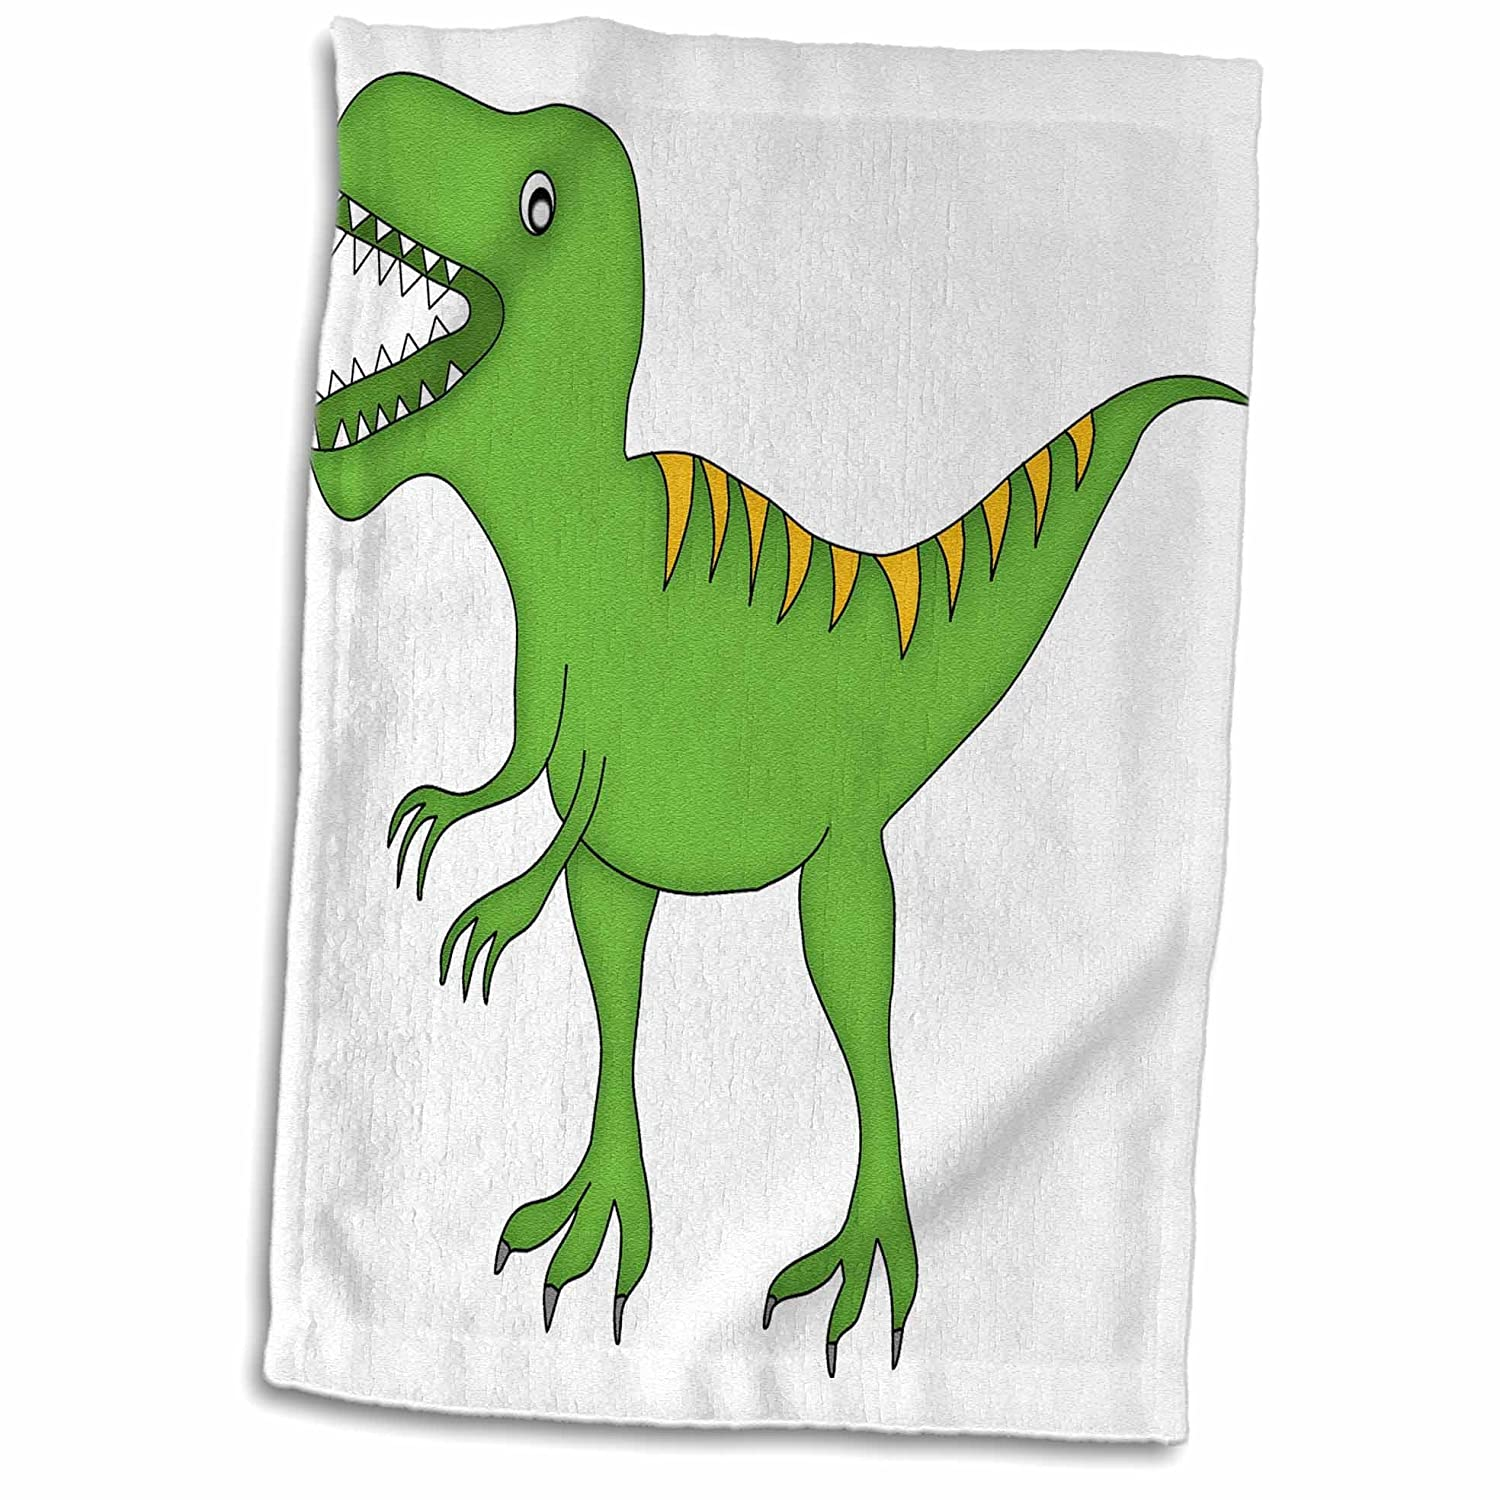 3D Rose Green and Yellow Dinosaur Growling Hand Towel 15\' x 22\' Multicolor